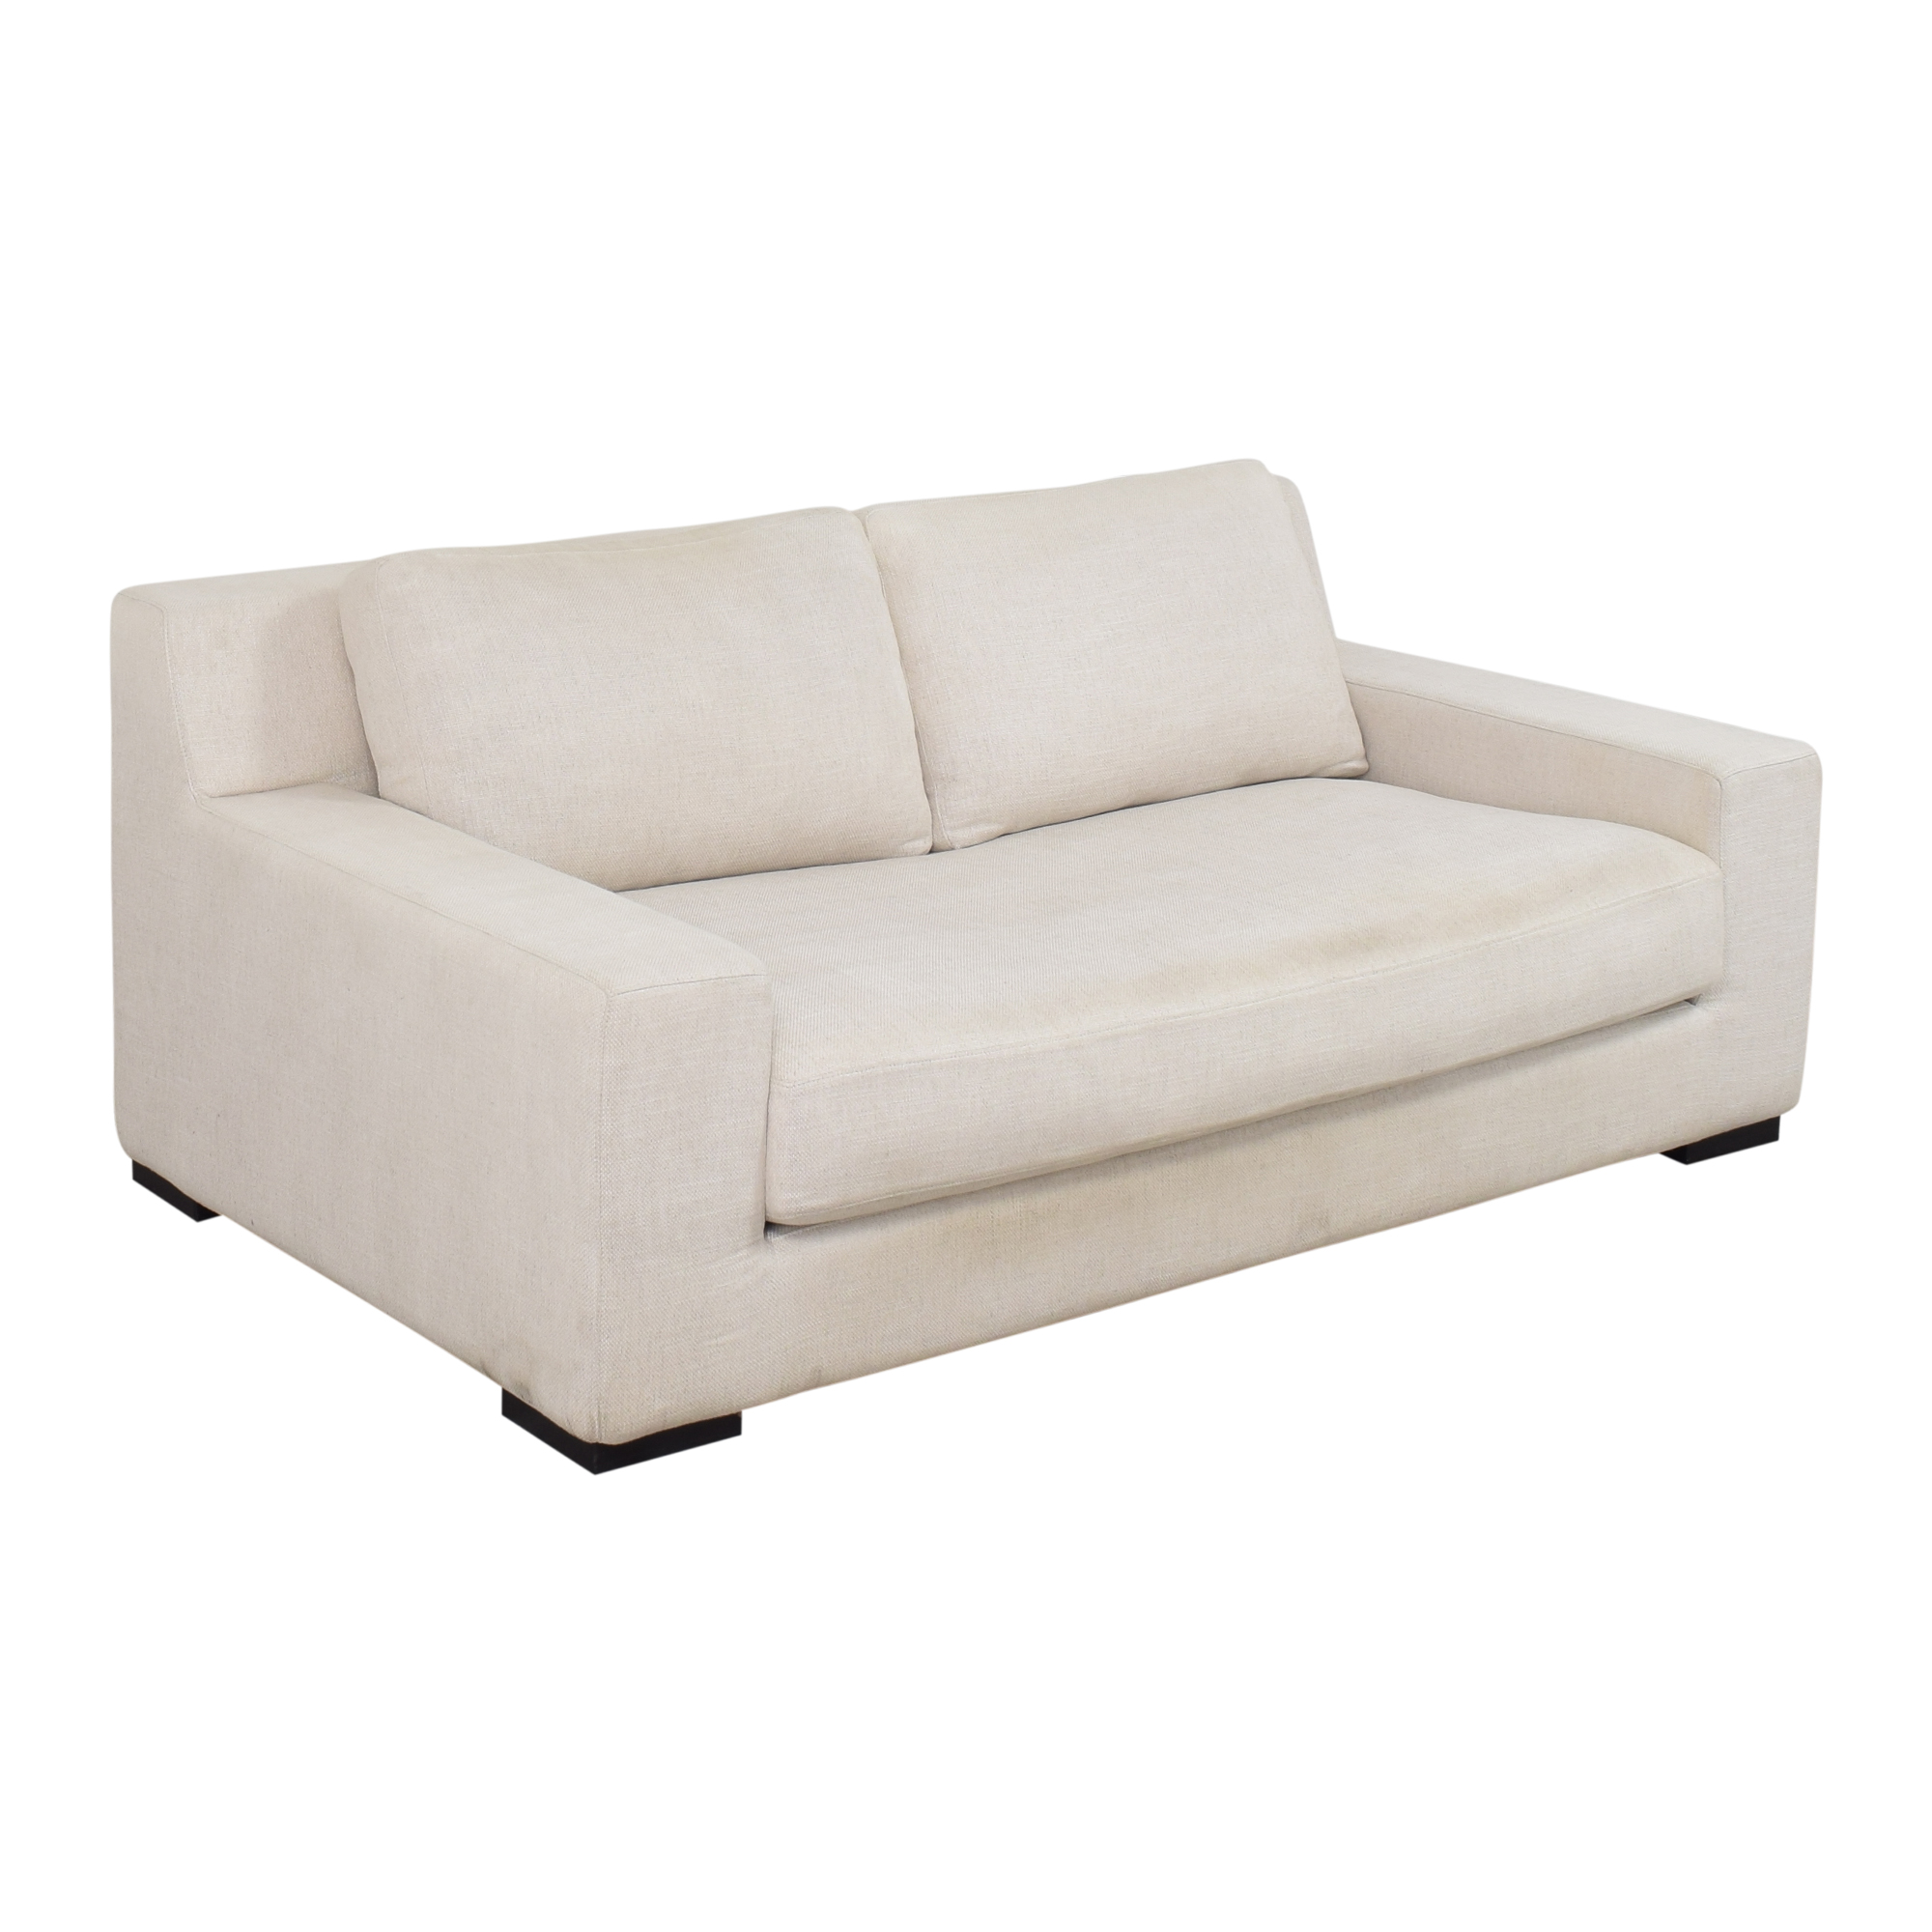 Restoration Hardware Restoration Hardware Modena Track Arm Bench-Seat Sofa dimensions